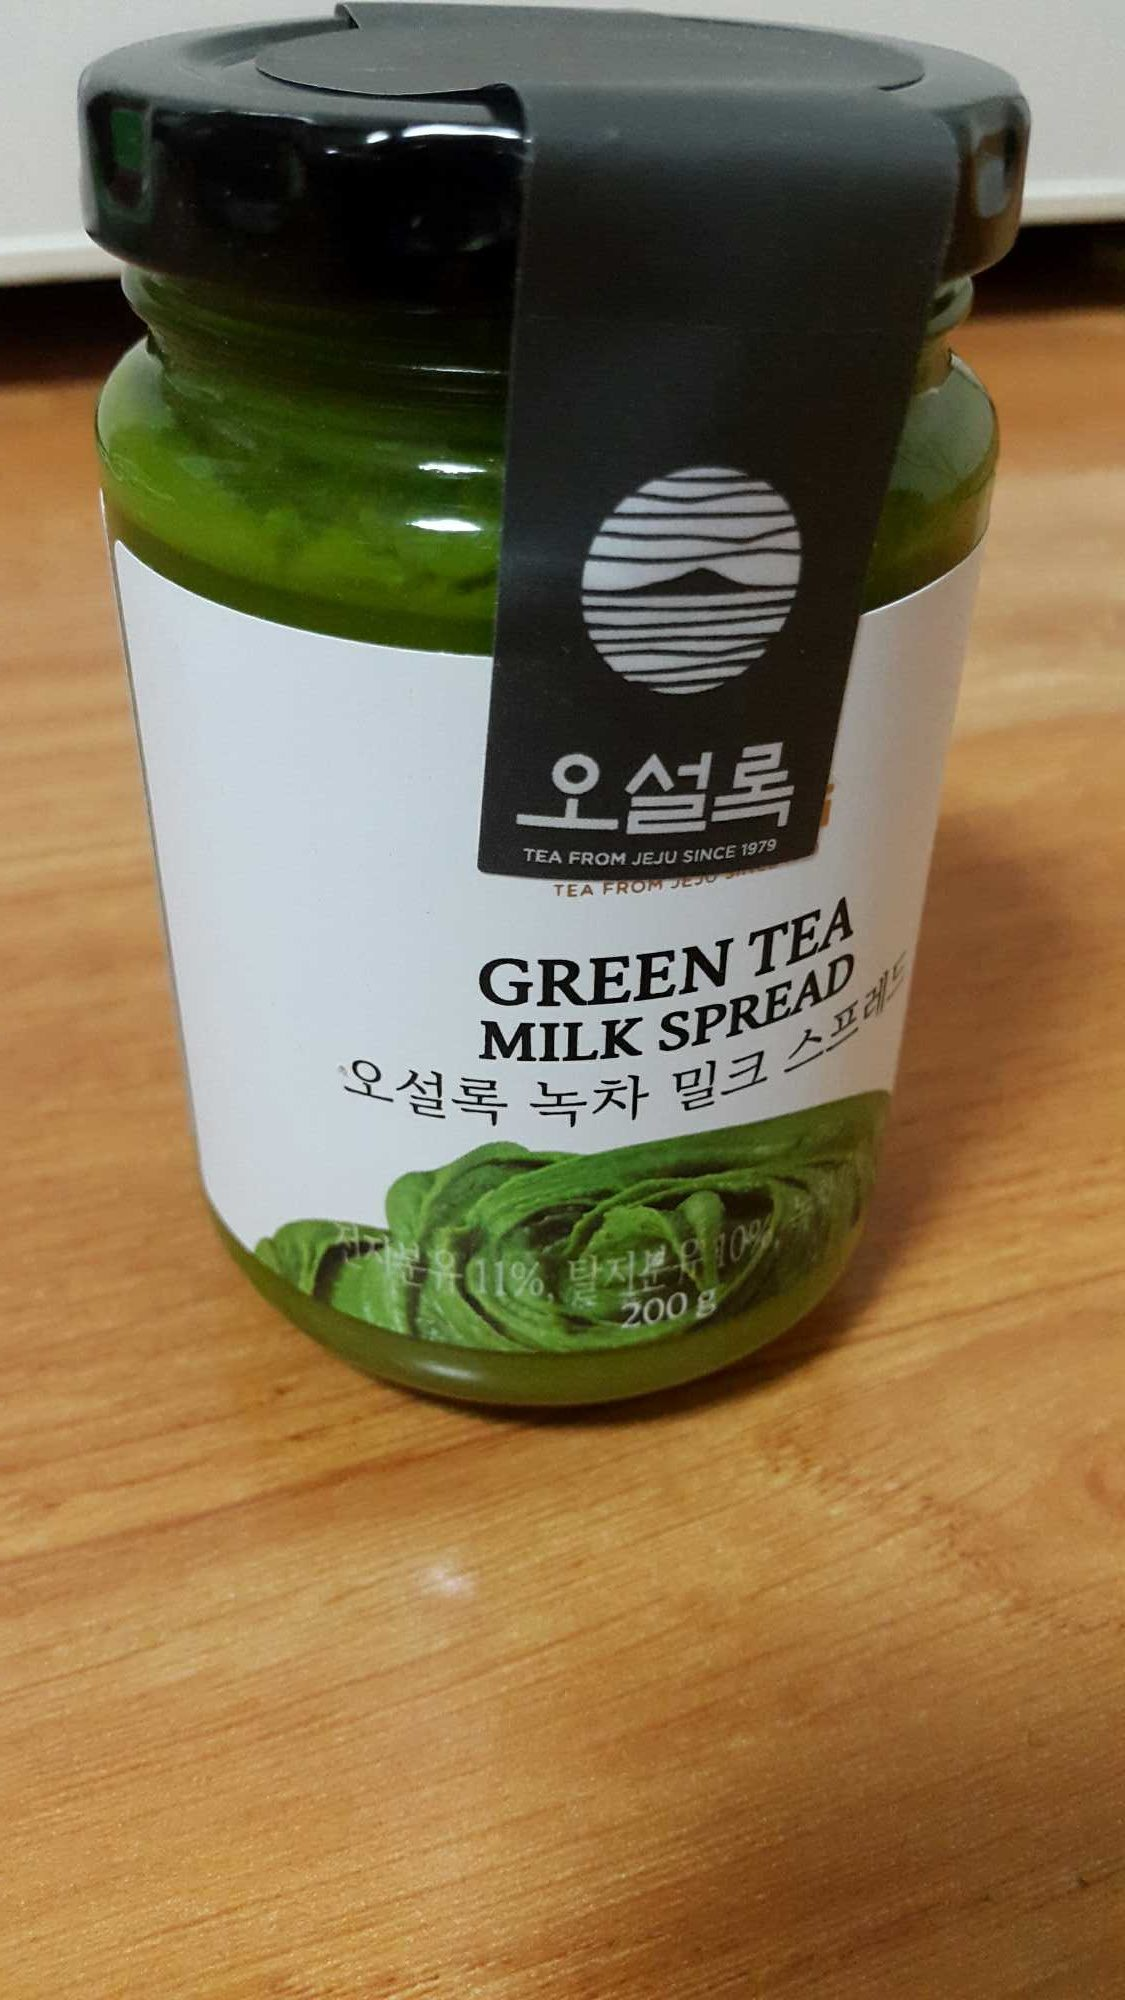 green tea milk spread - Product